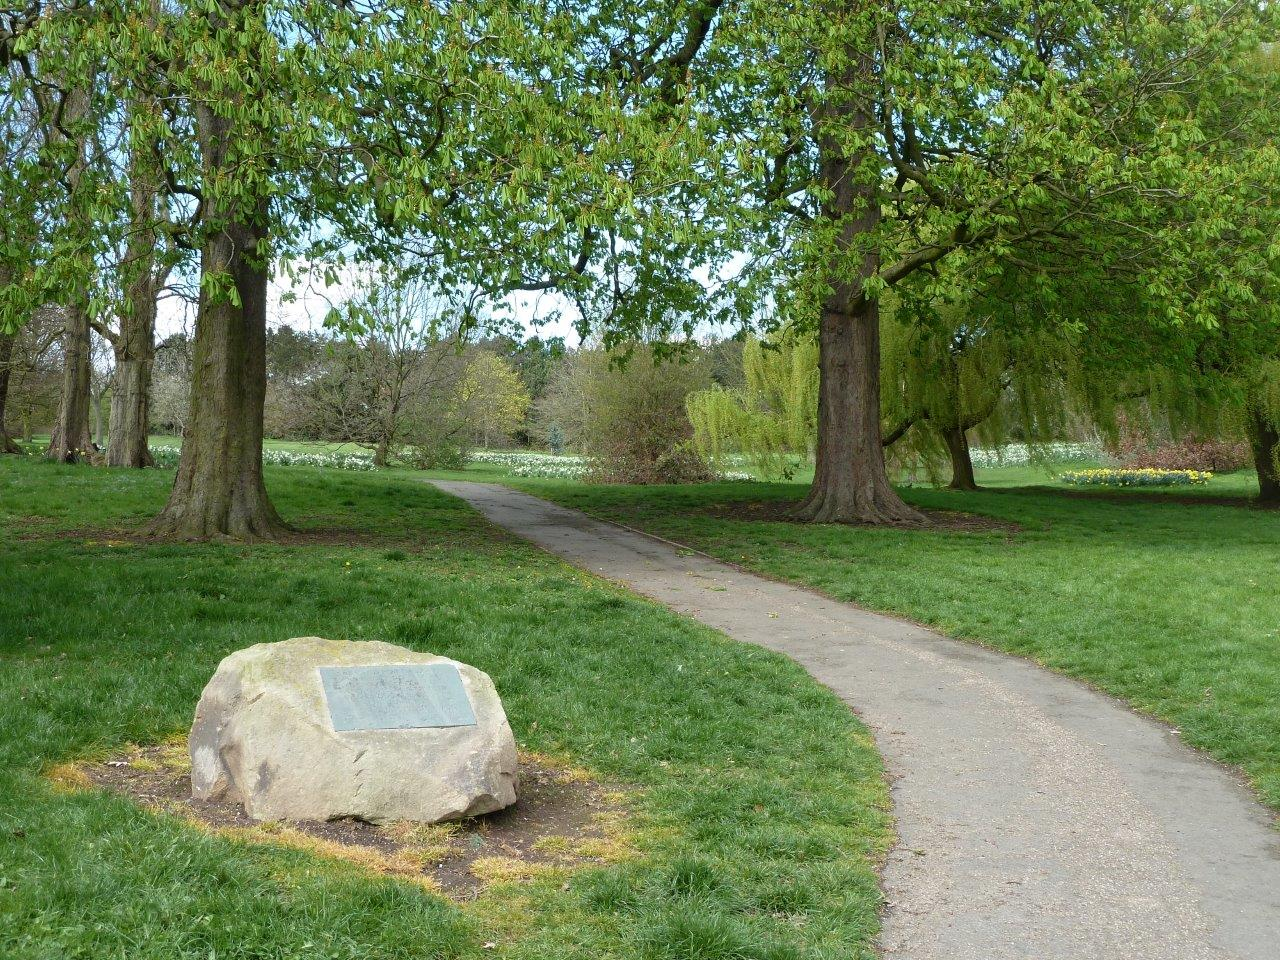 Clemsons Park - entrance from Austen Ave with dedication stone